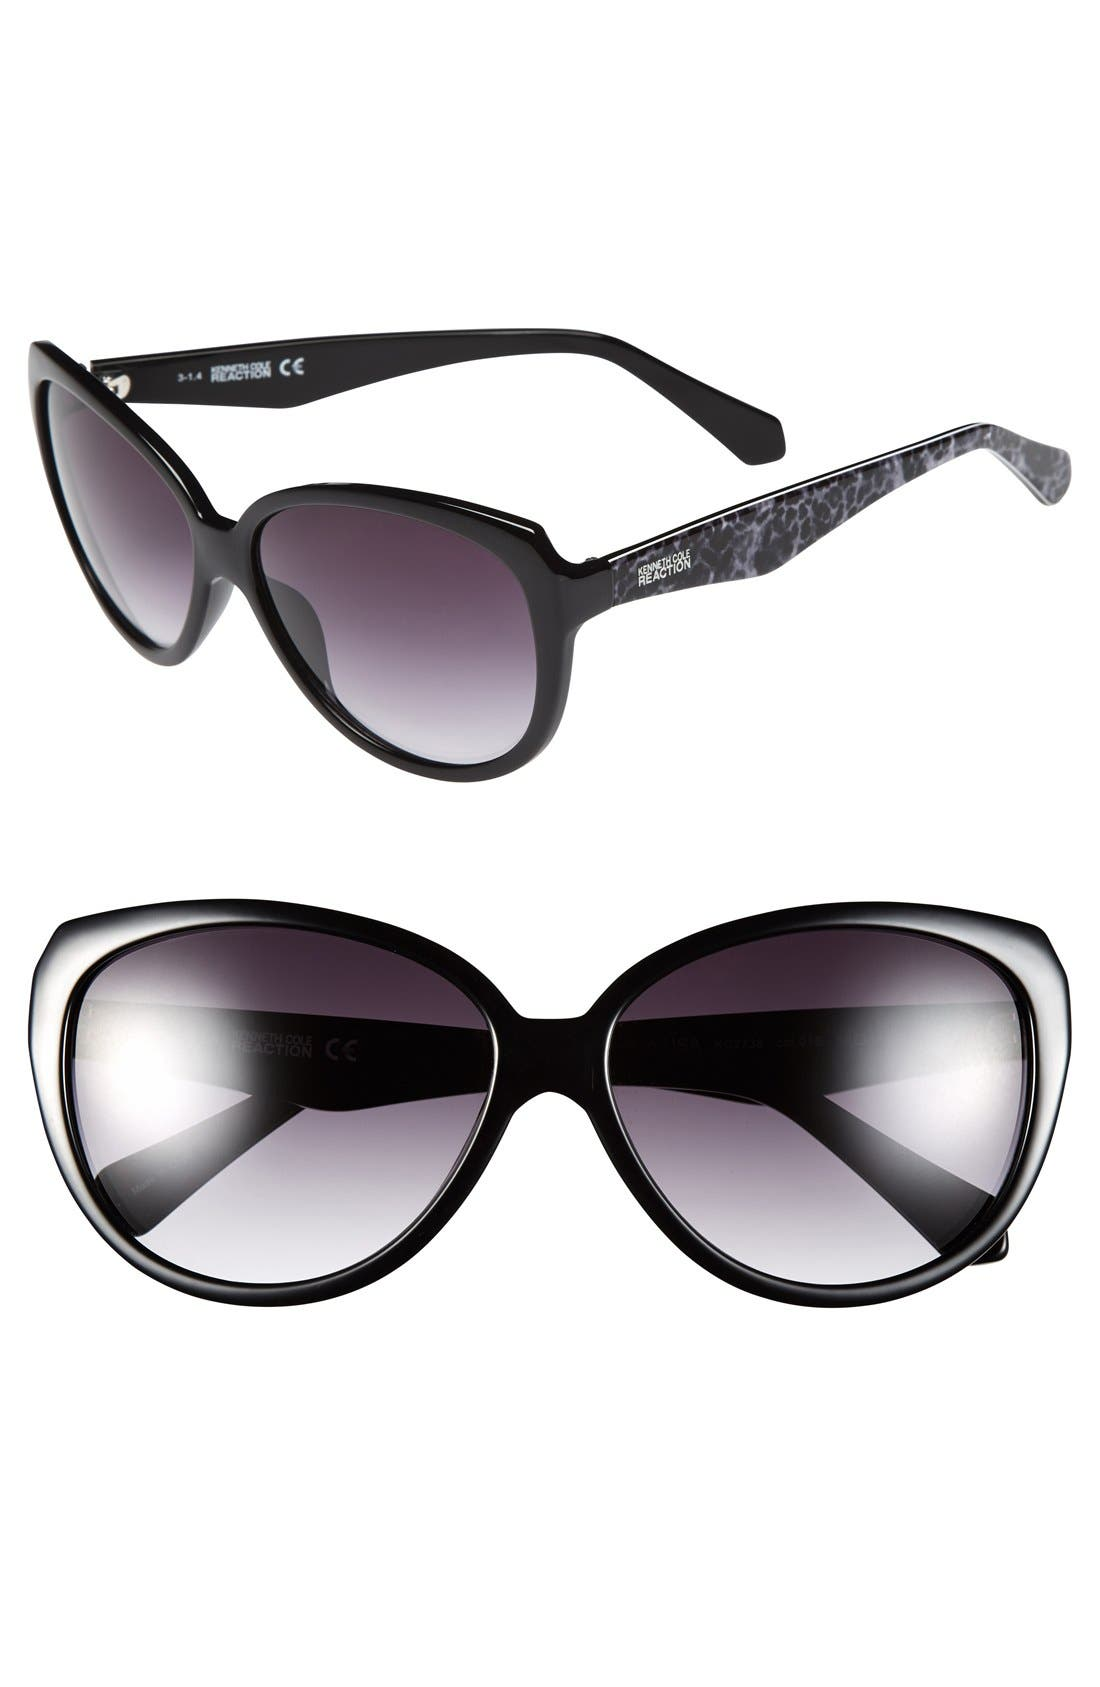 Main Image - Kenneth Cole Reaction 60mm Cat Eye Sunglasses